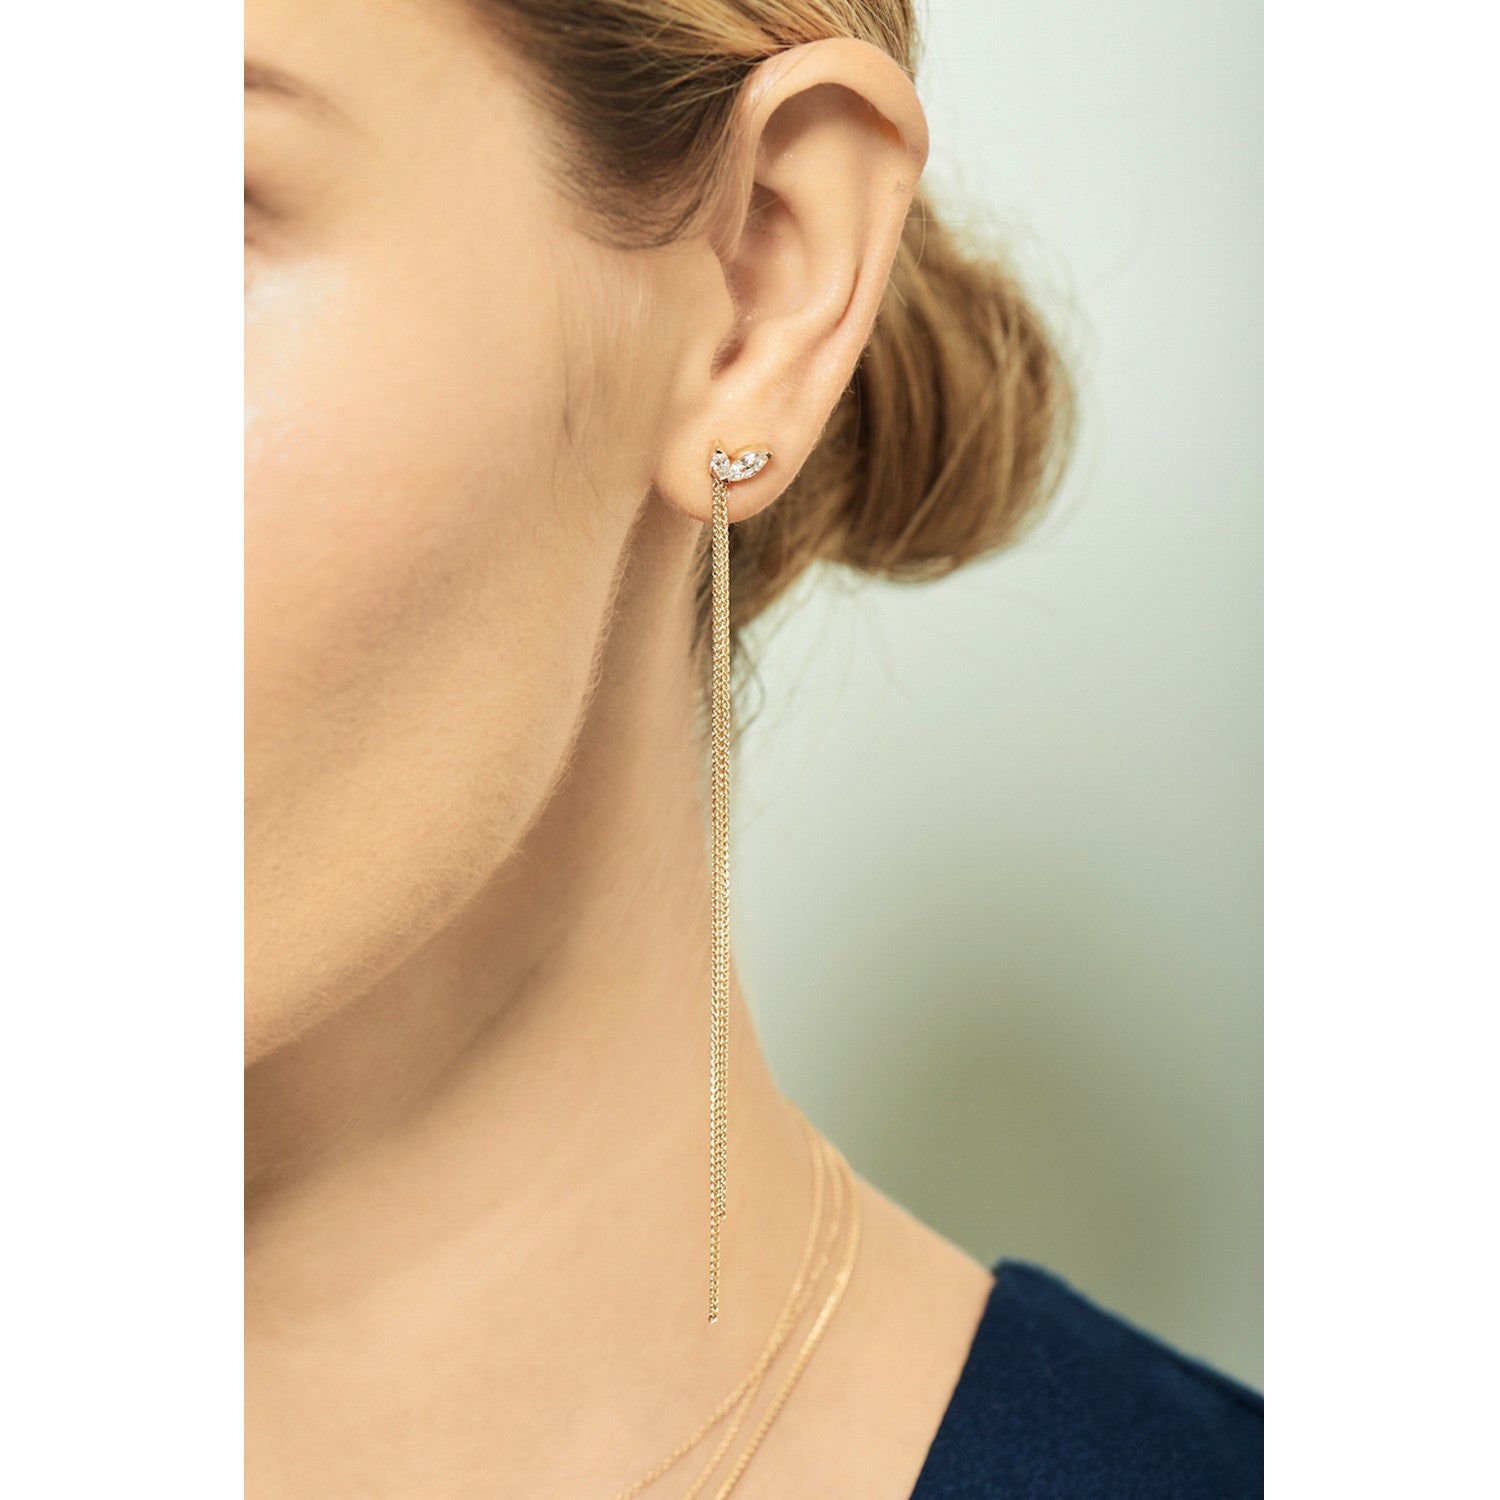 Selin Kent 14K Bella Ear Jacket - On Model